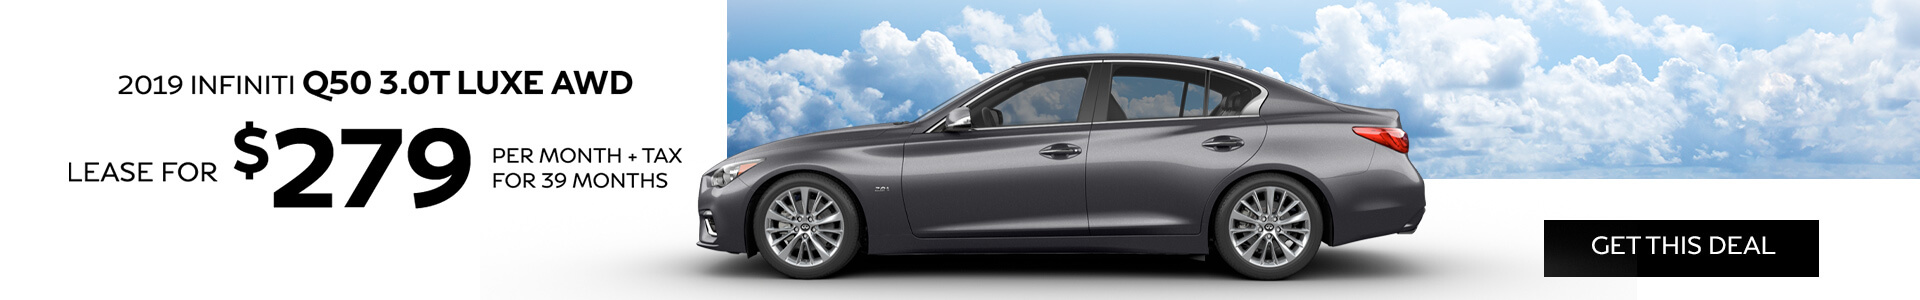 Q50 LUXE - Lease for $279